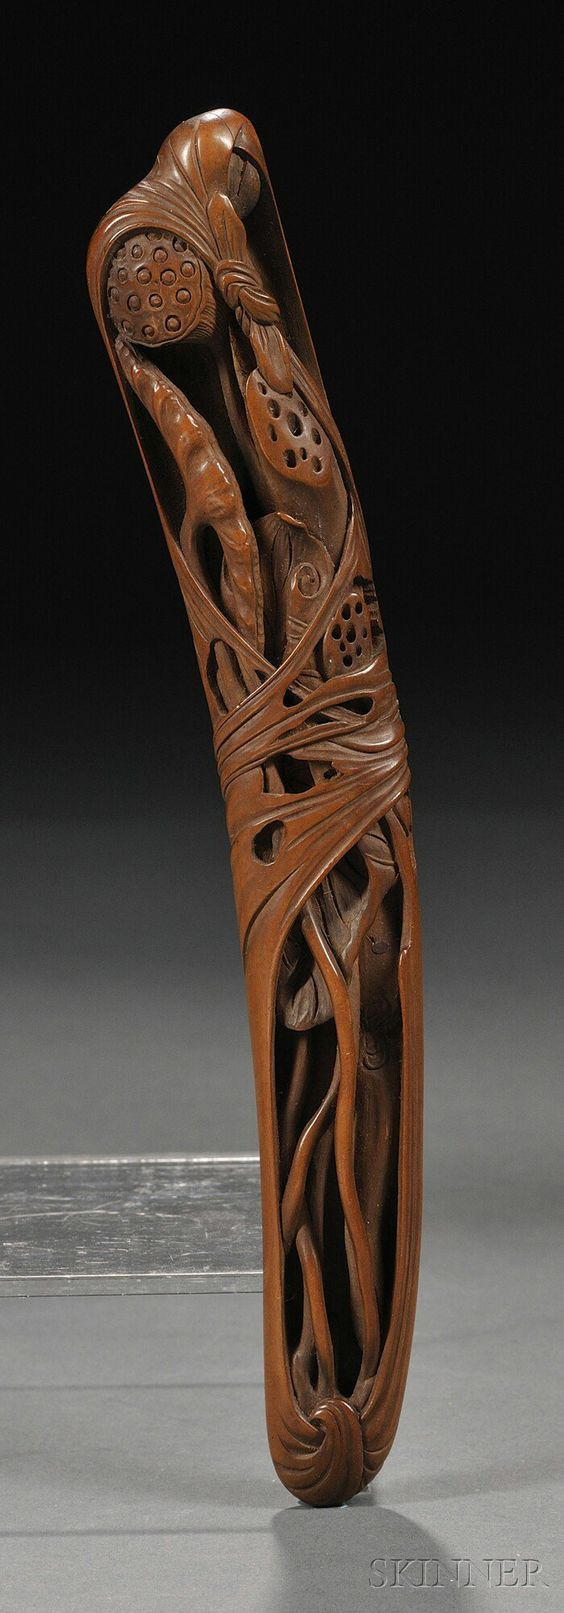 """Boxwood Sashi Netsuke, Japan, 19th century, elongated shape, carved in relief with lotus seed pods and leaves to the front, signed """"Shimizu…"""""""